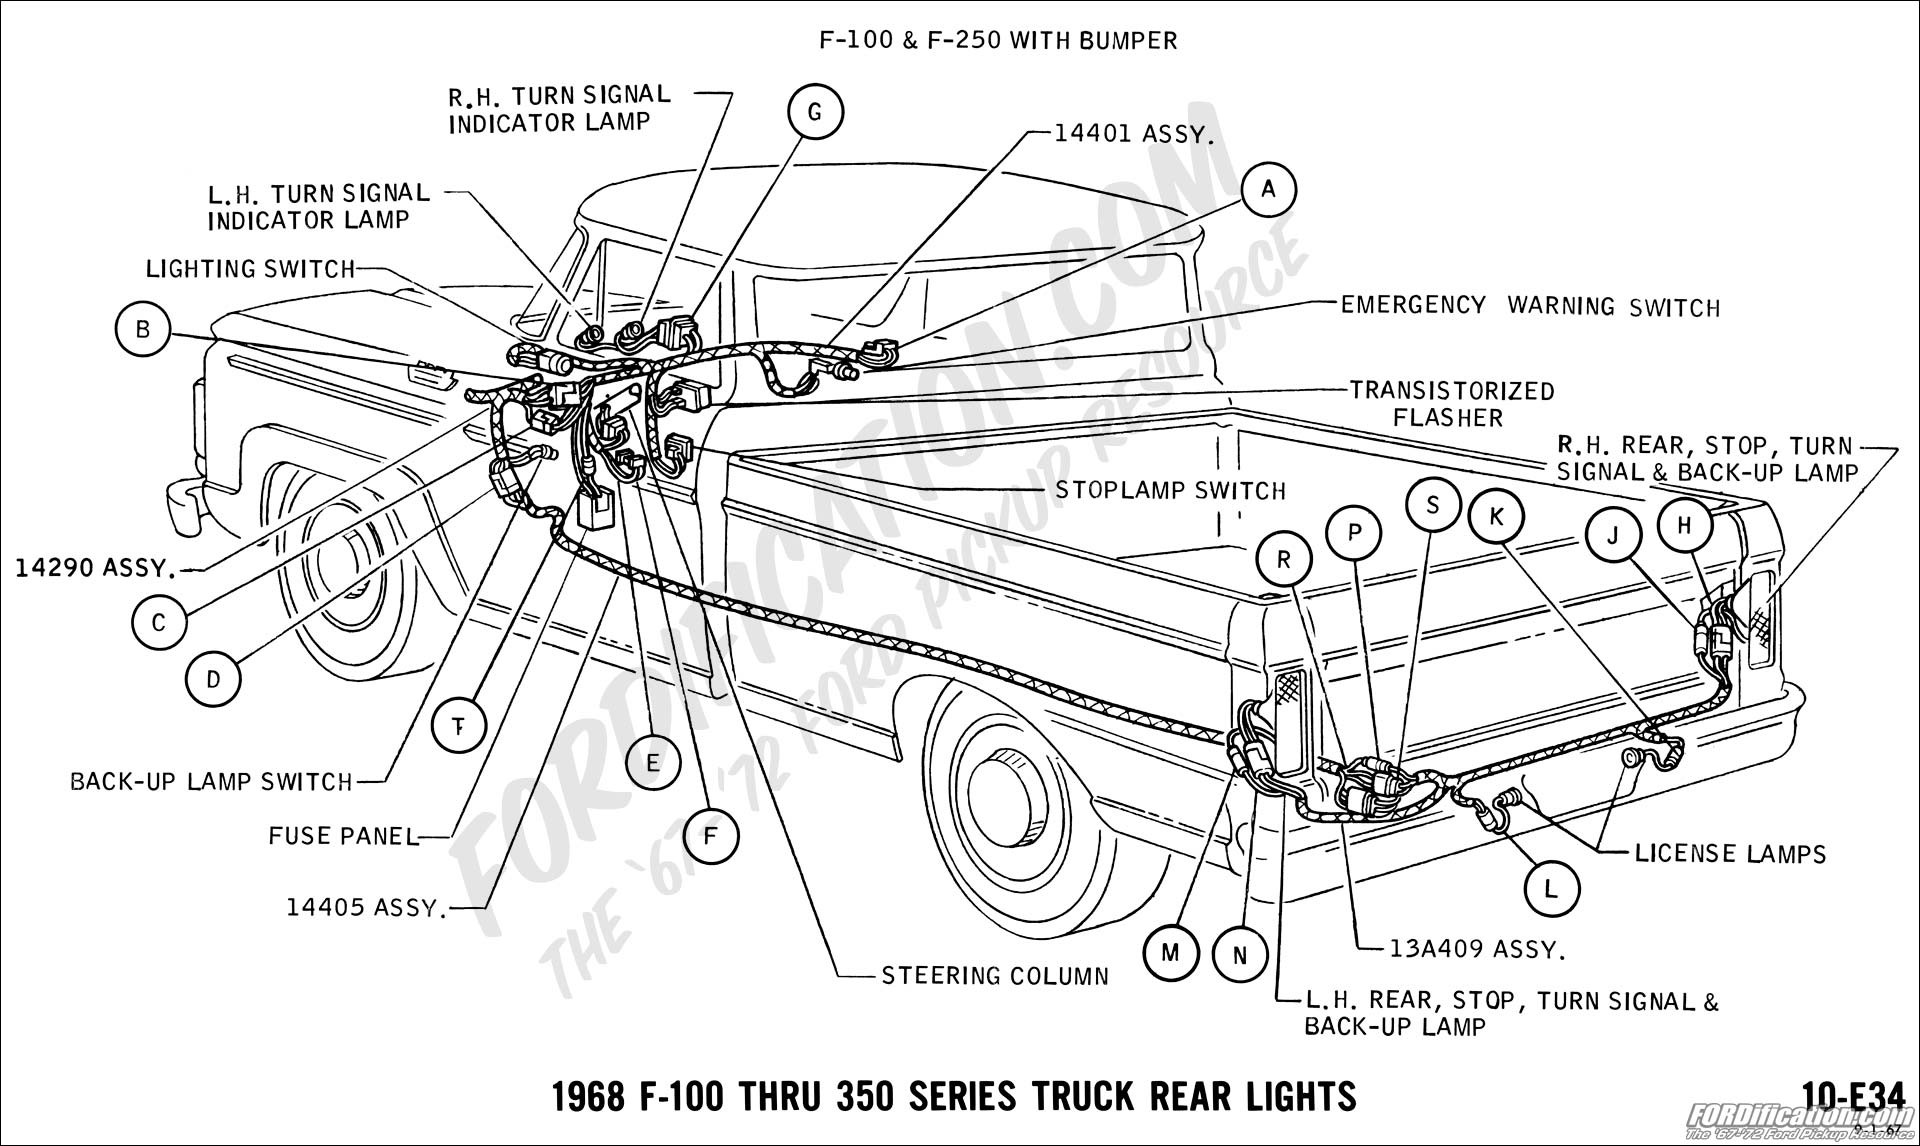 hight resolution of 1992 ford f150 parts diagram wire diagram kmestc of 1992 ford f150 parts diagram fox